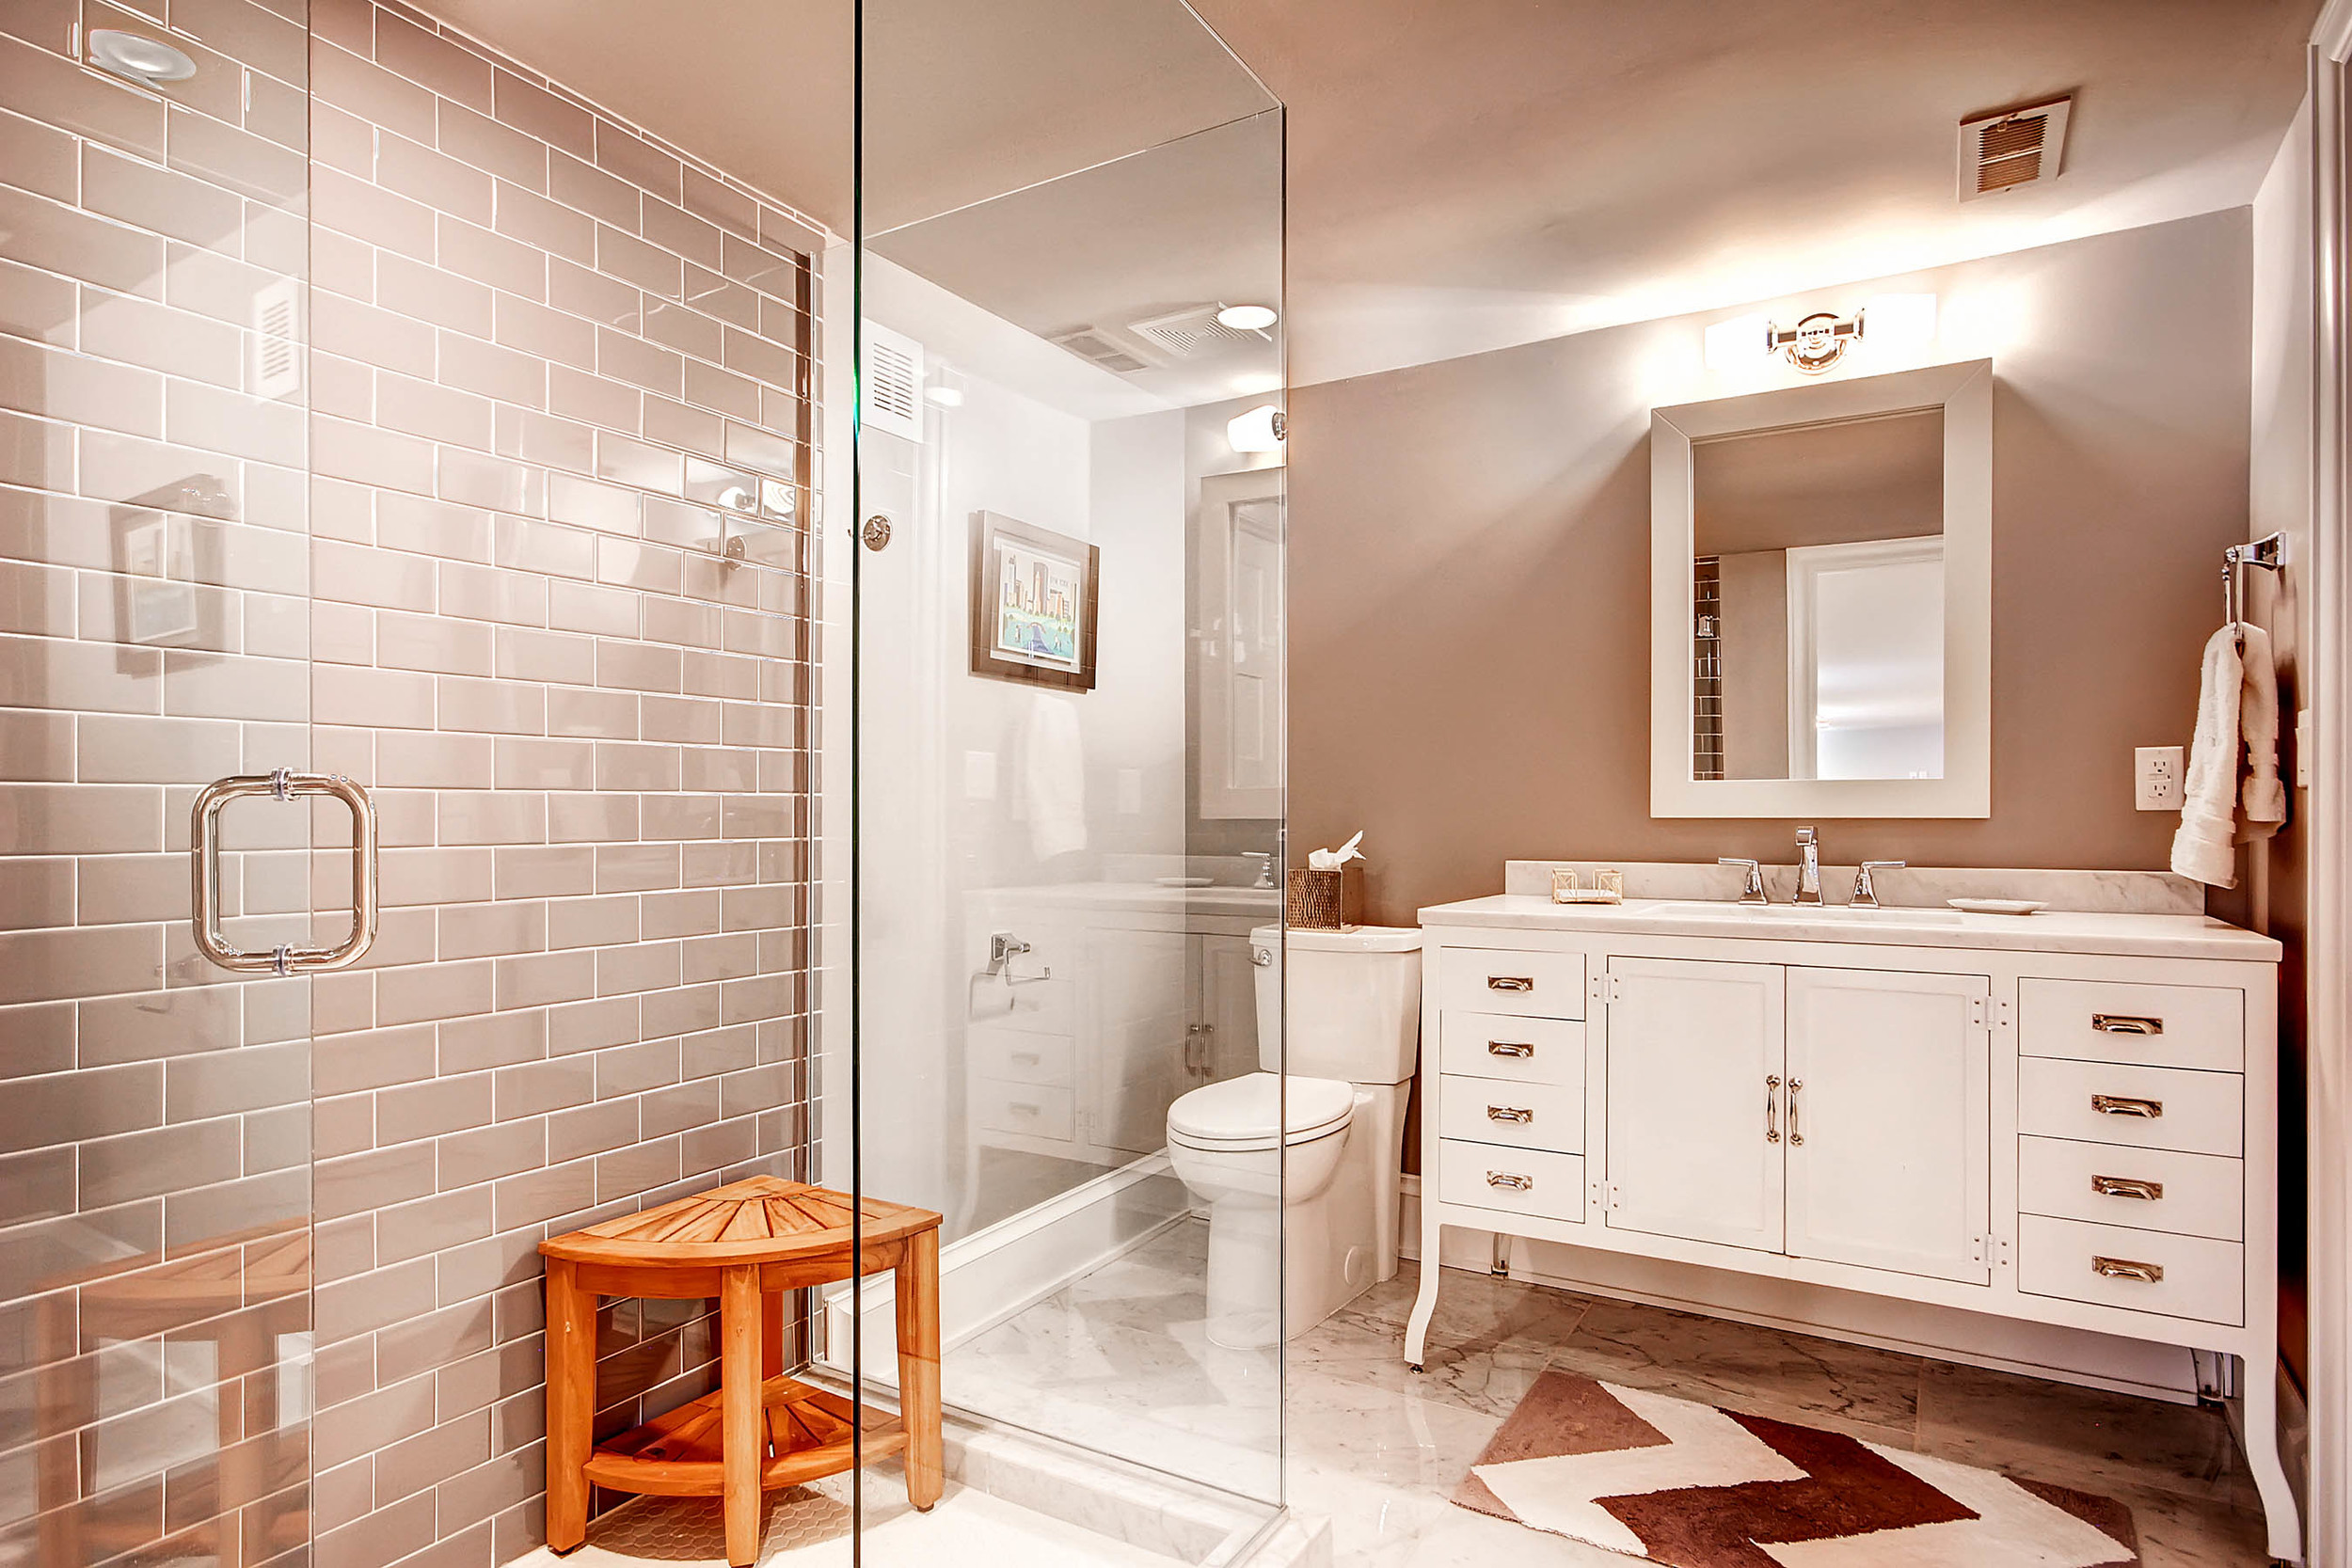 863 S Williams St Denver CO-print-025-23-Lower Level Bathroom-2700x1800-300dpi.jpg